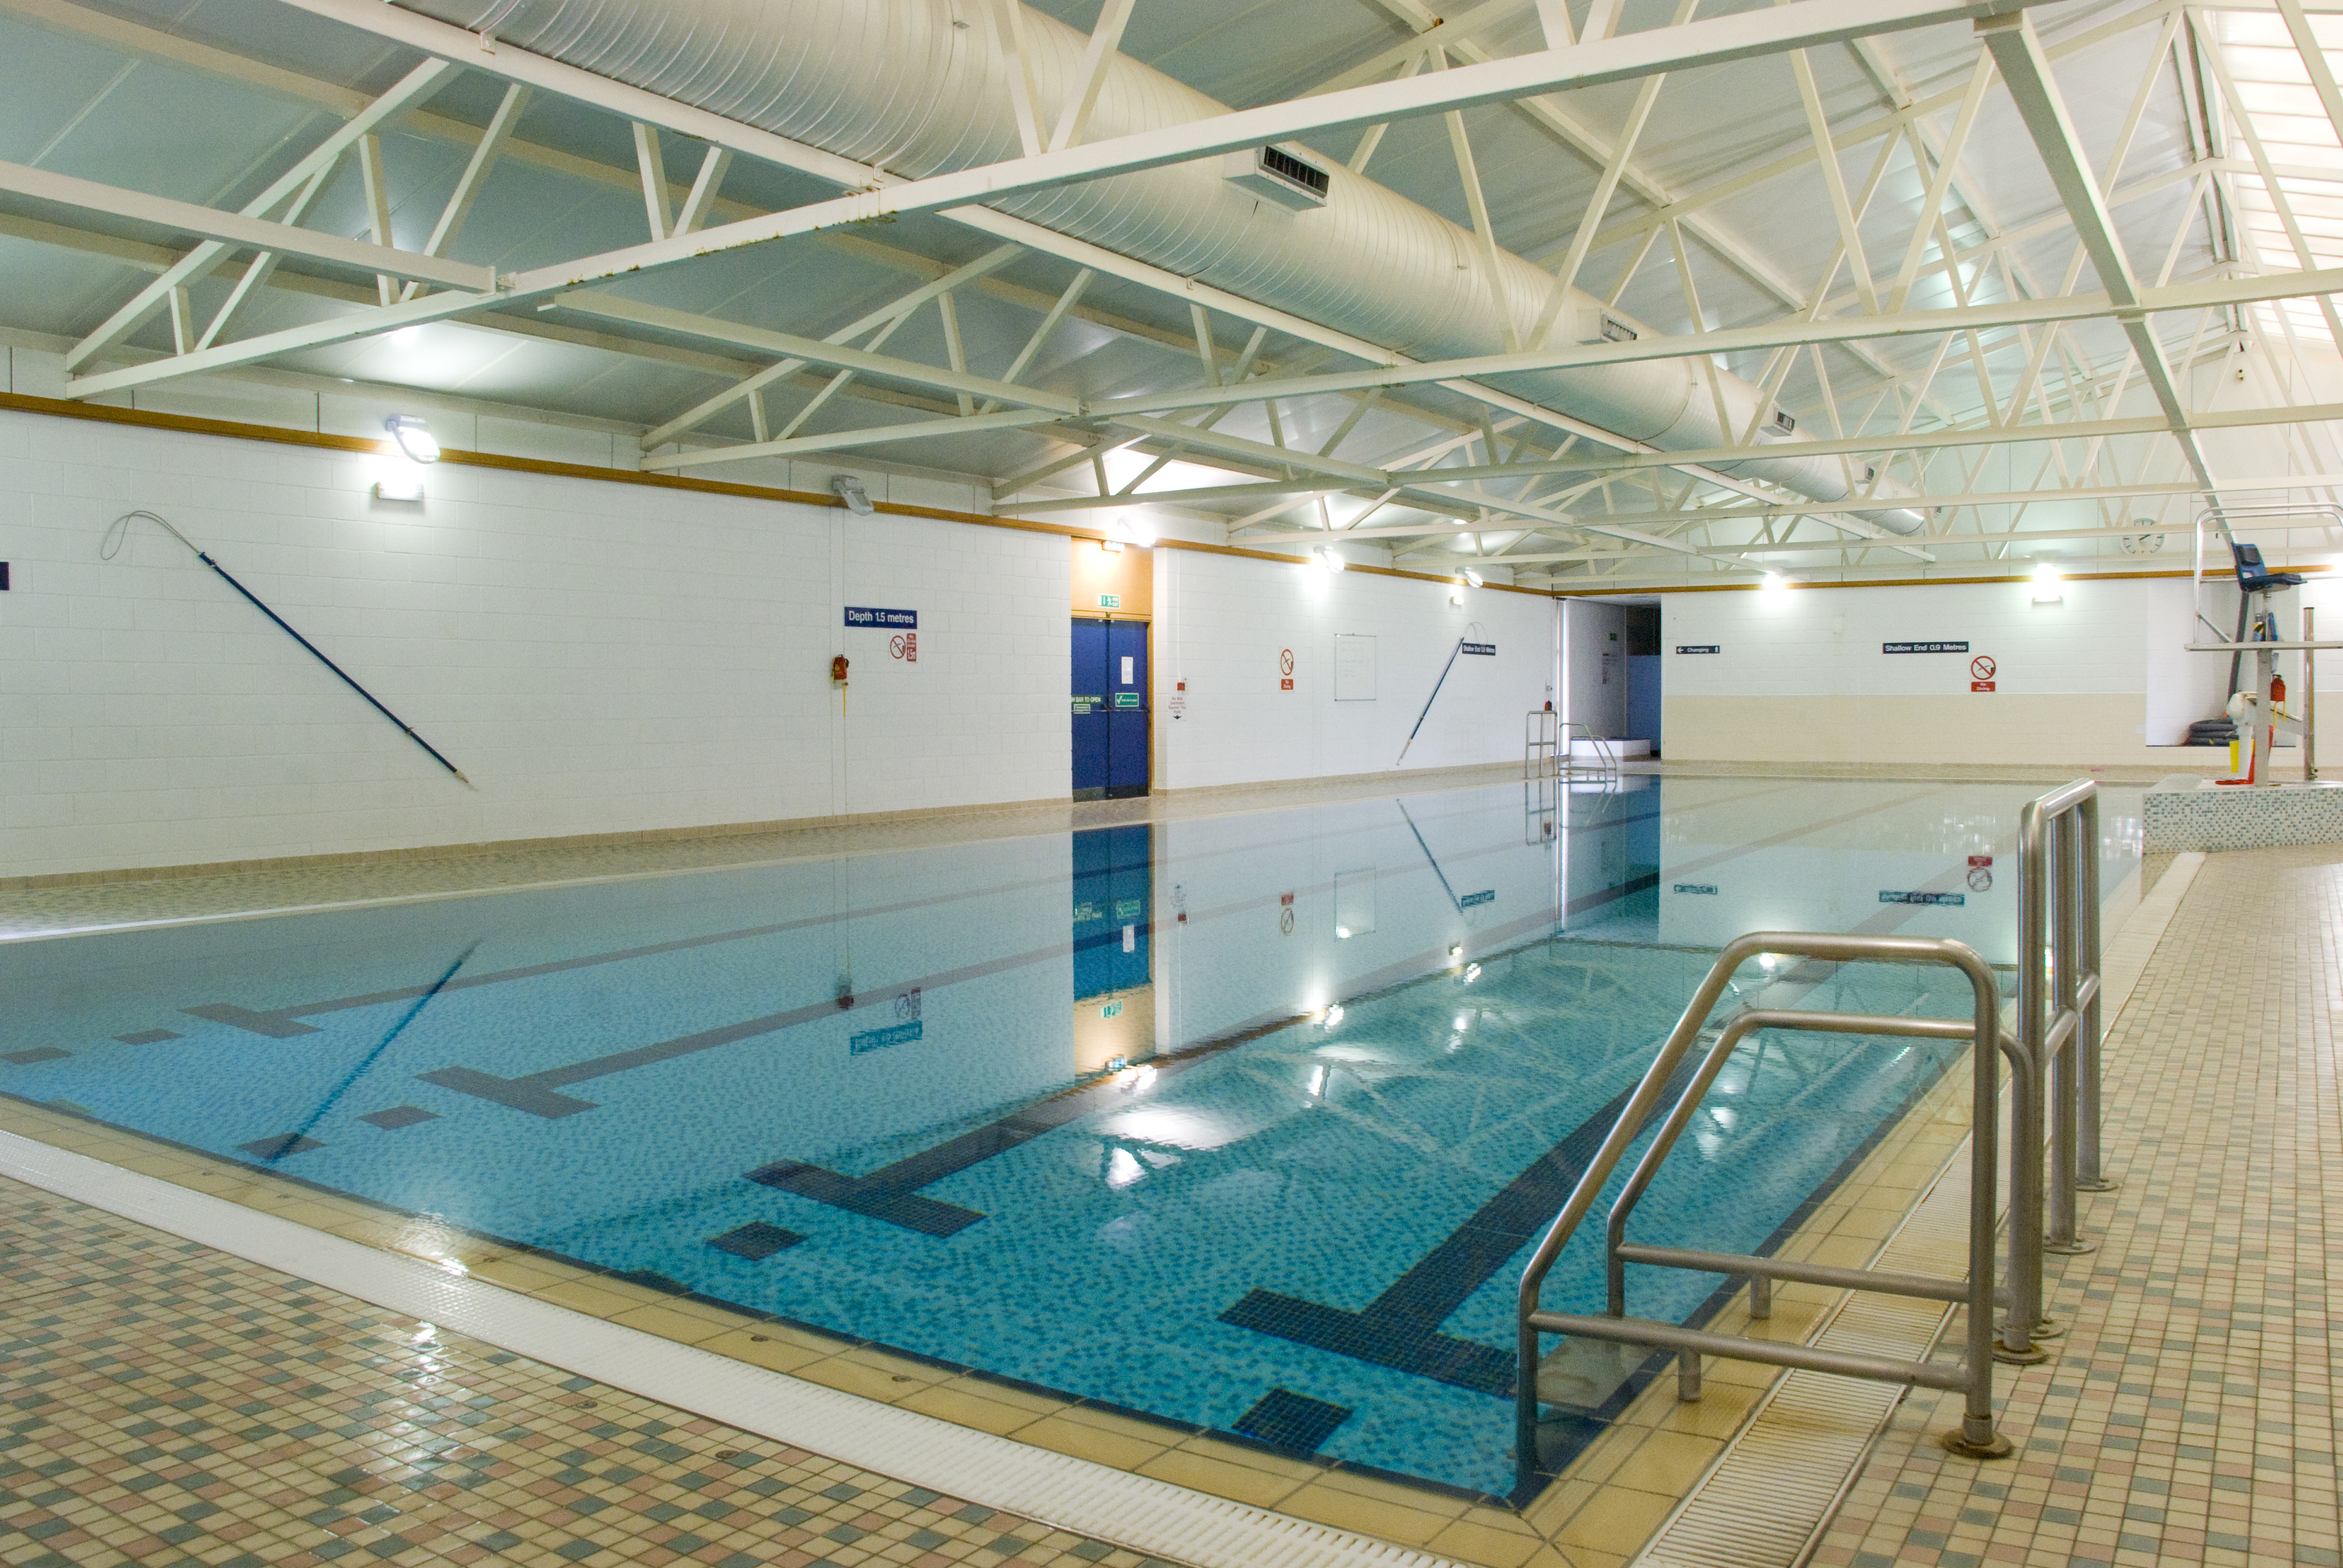 Portlethen Swimming Pool and Academy Sports